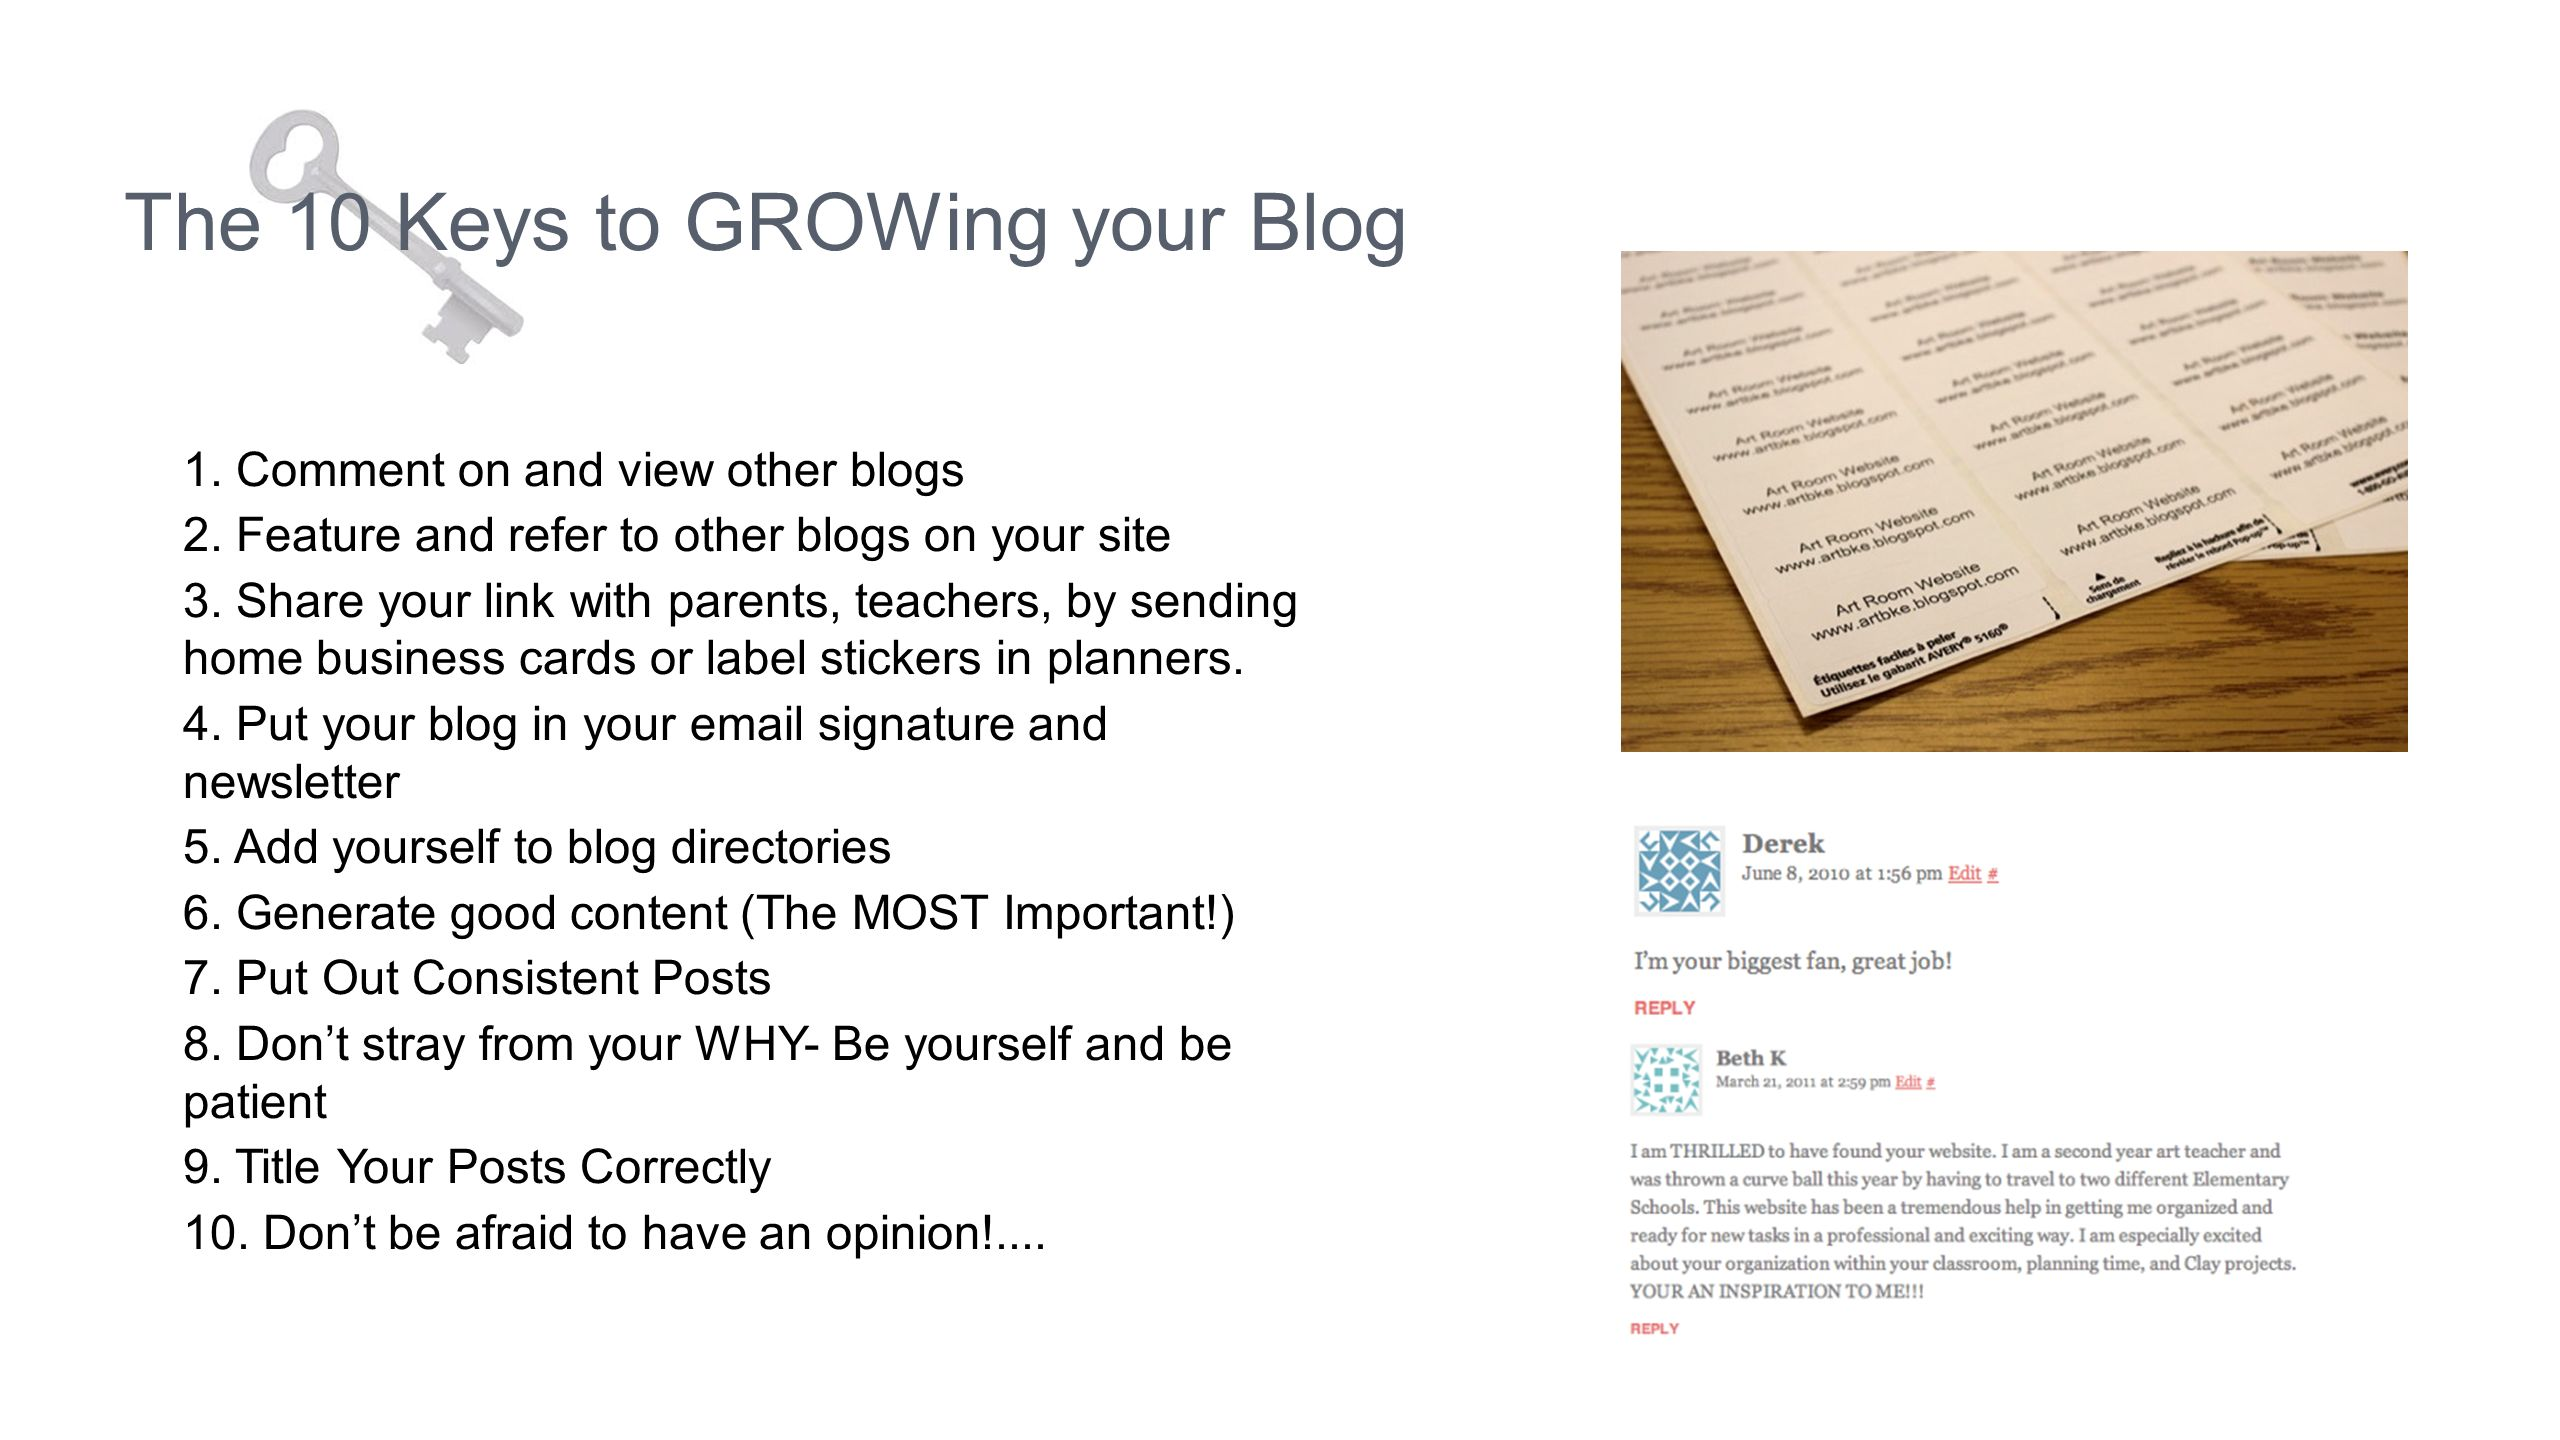 The 10 Keys to GROWing your Blog 1. Comment on and view other blogs 2. Feature and refer to other blogs on your site 3. Share your link with parents,